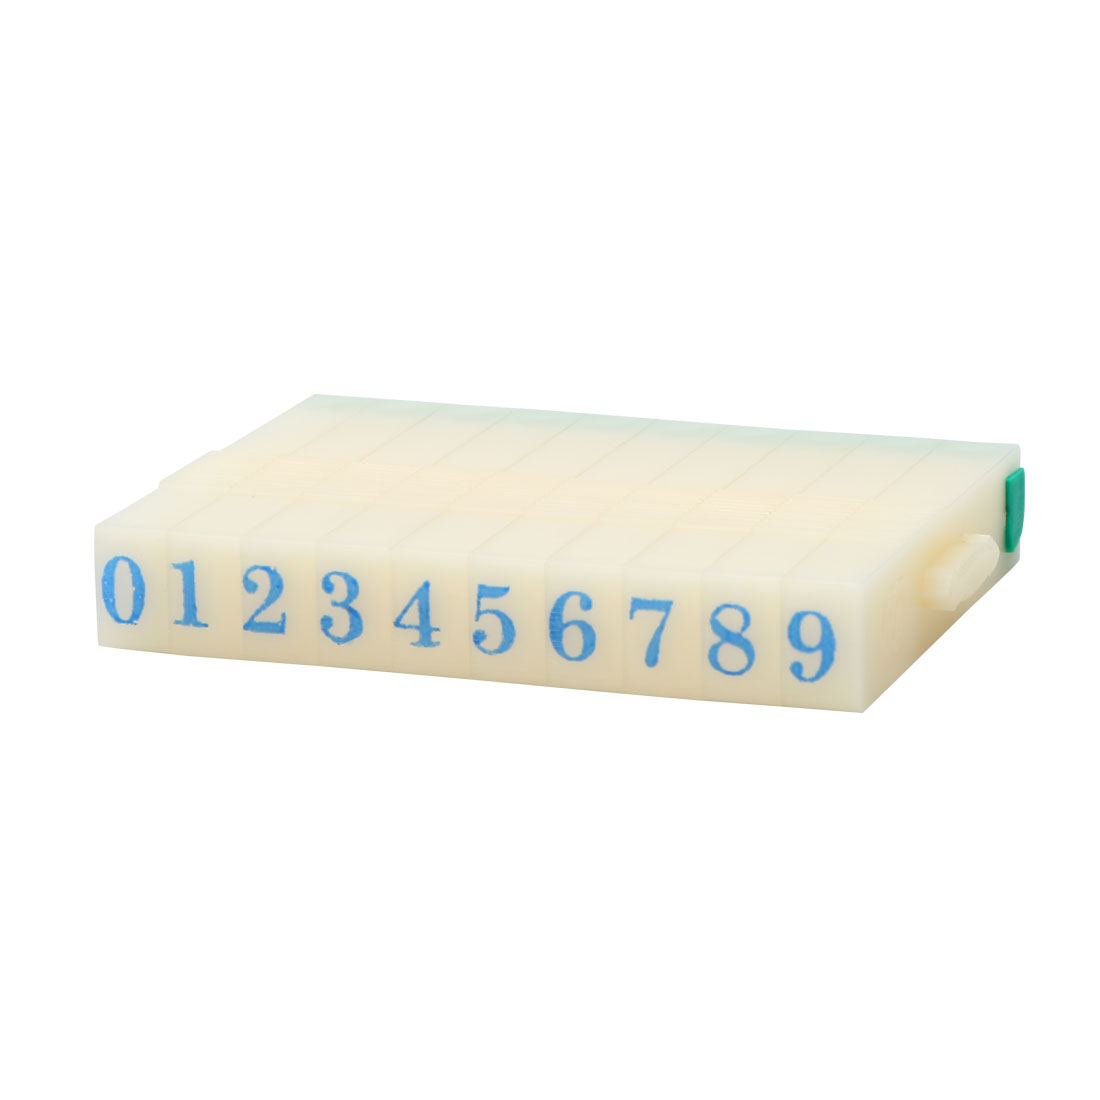 8mm Width Off White Green Plastic Rubber 0-9 Digits Detachable Number Stamp